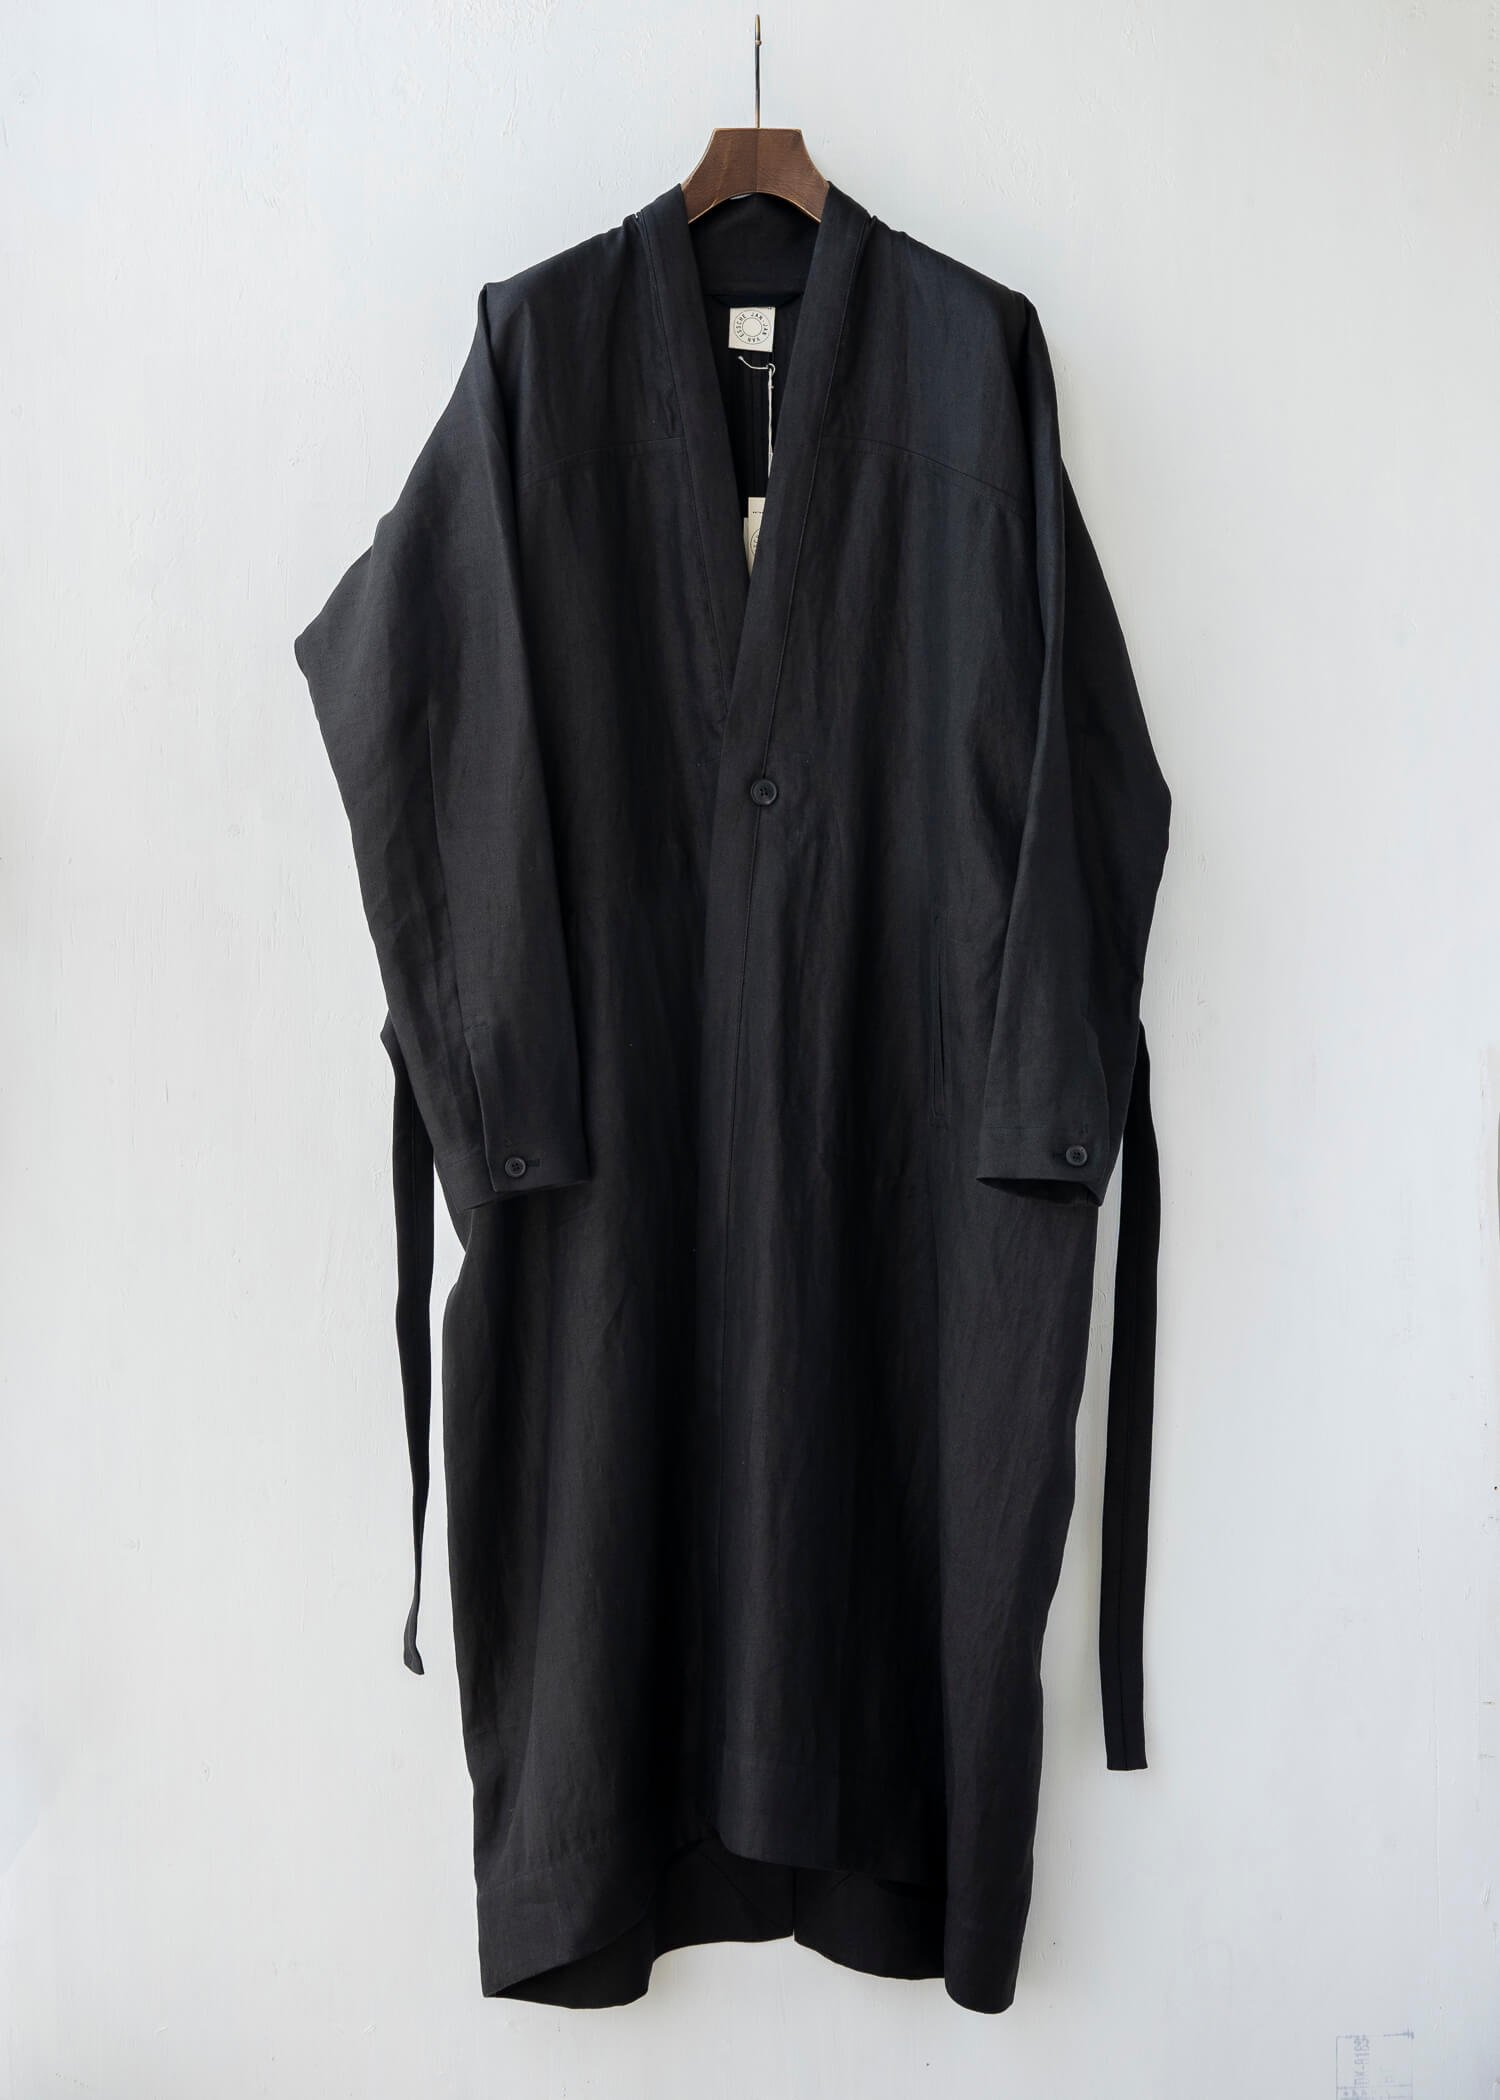 JAN-JAN VAN ESSCHE / COAT#23 SUMMER TRENCH COAT BLACK HEMP TWILL